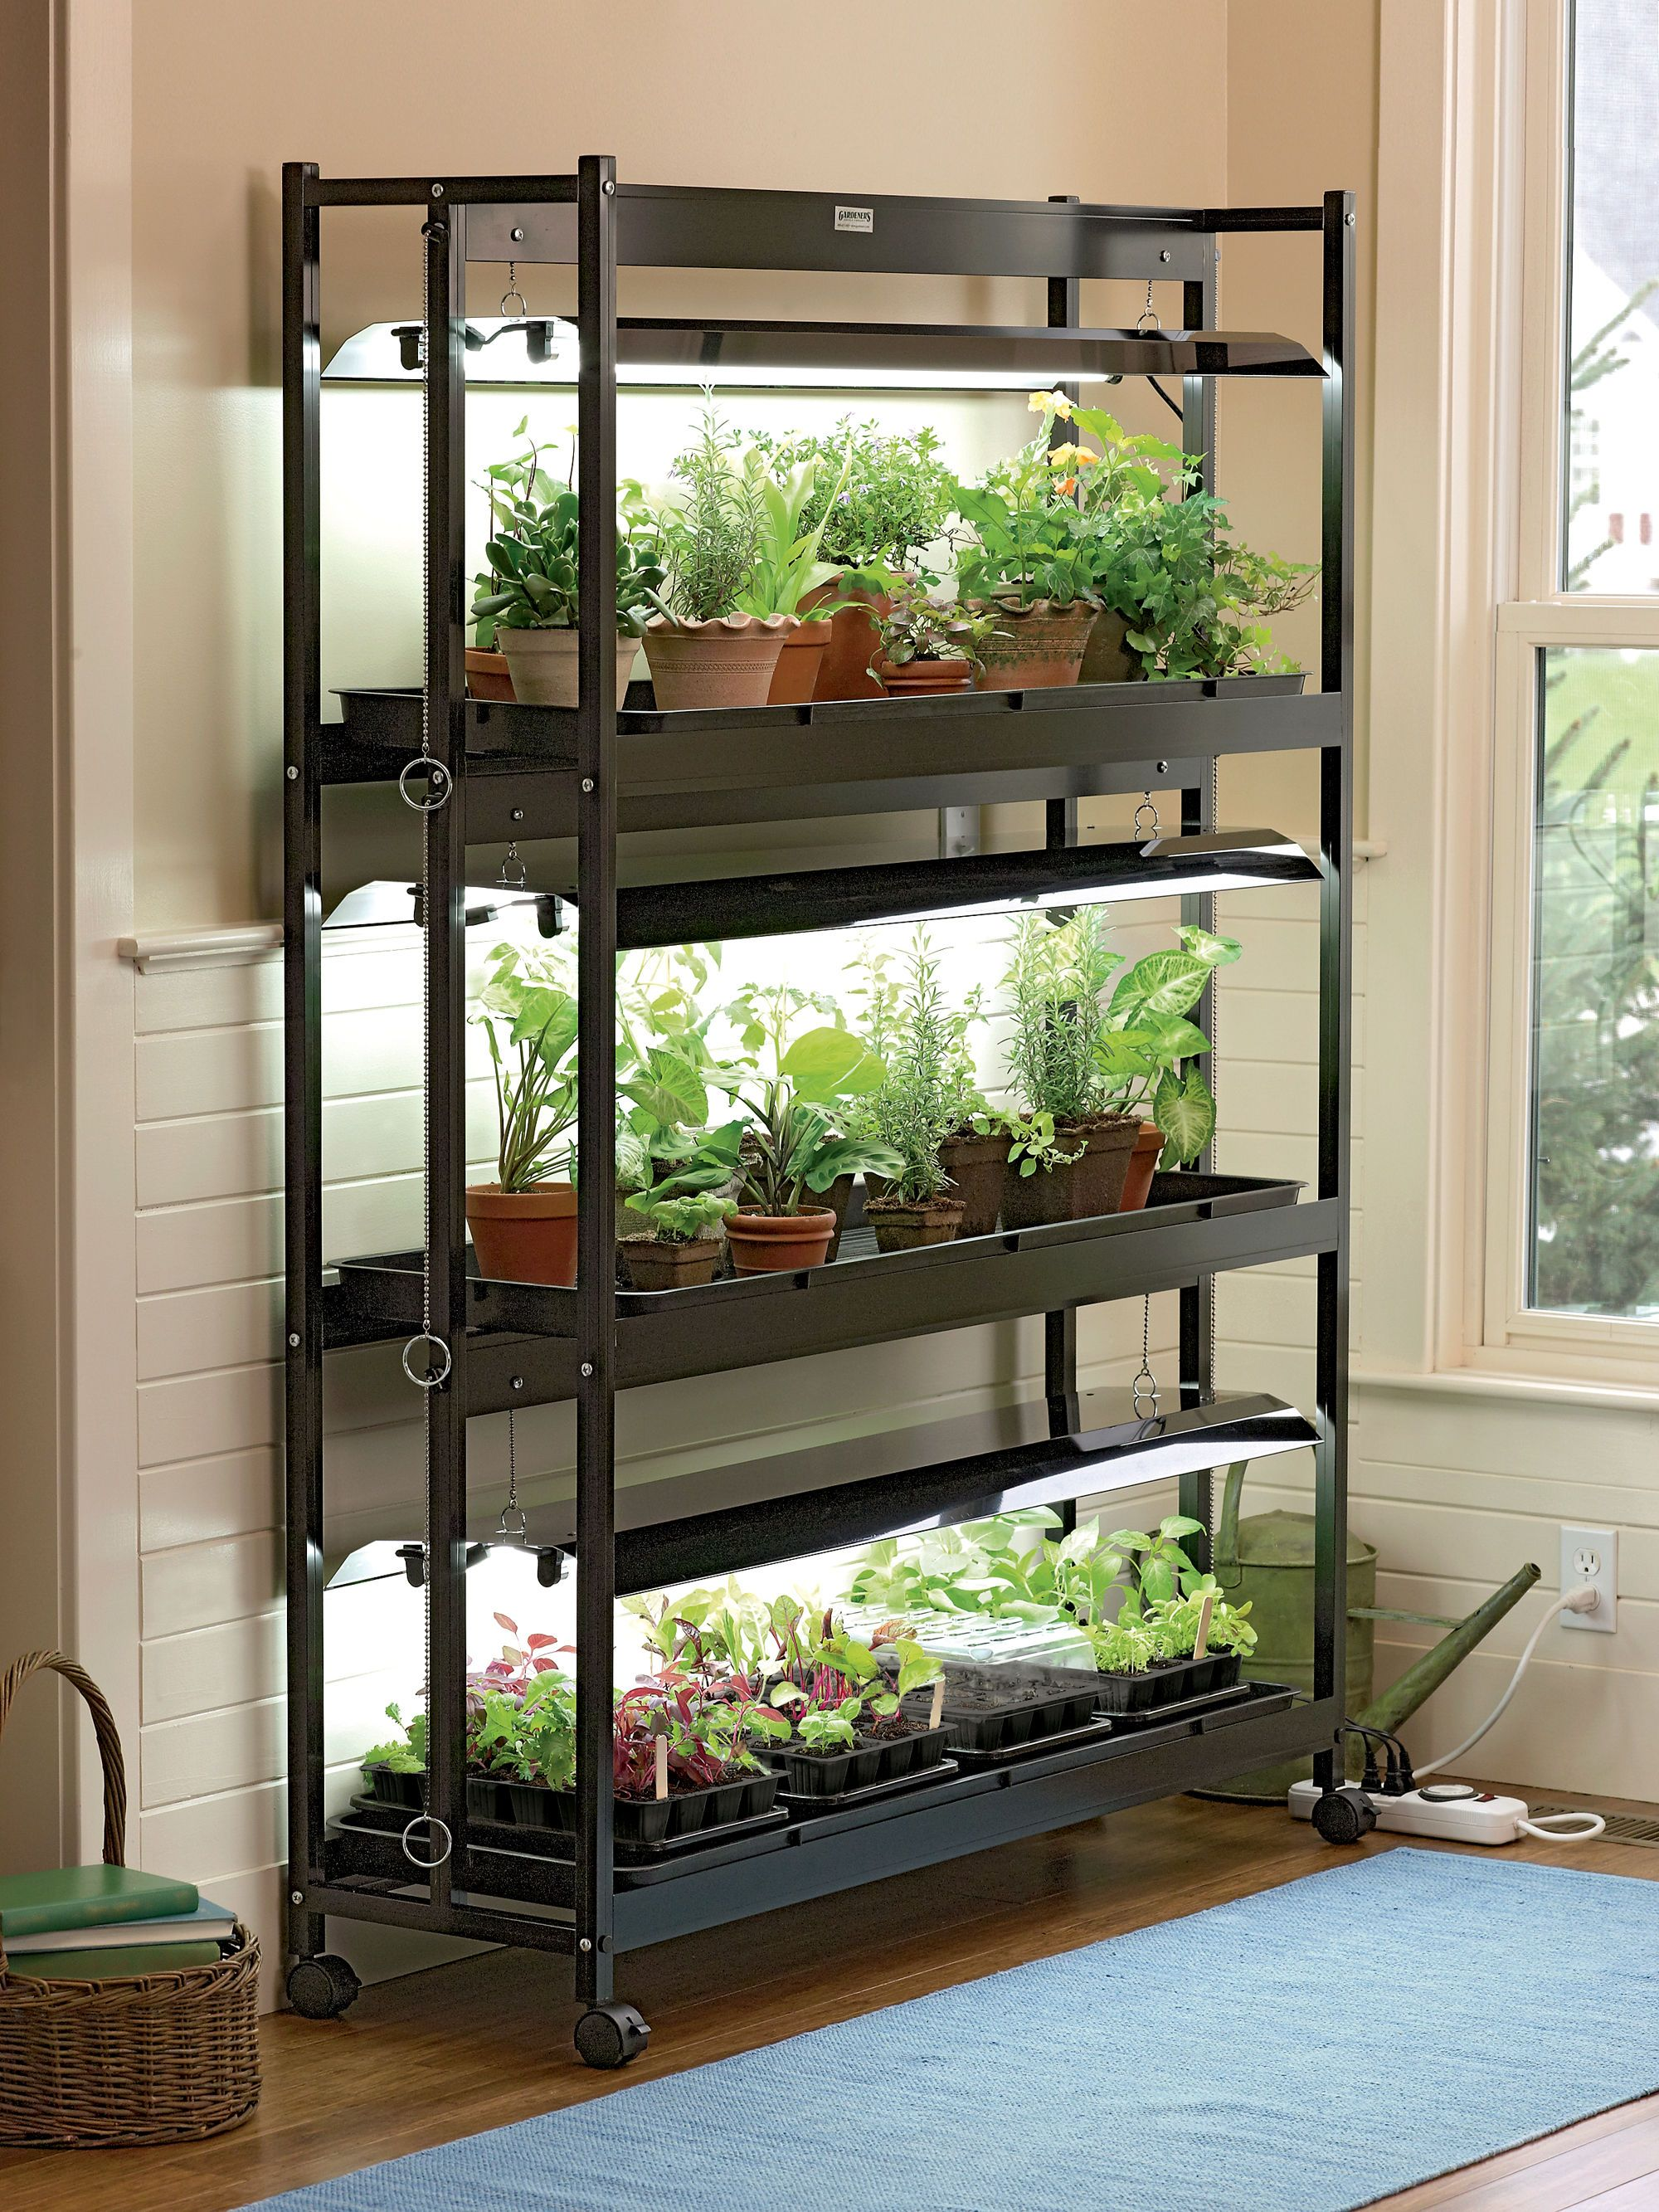 3 tier sunlite garden with t 5 bulbs grow light system i want cheap indoor grow light stand sunlite light garden with plant trays workwithnaturefo